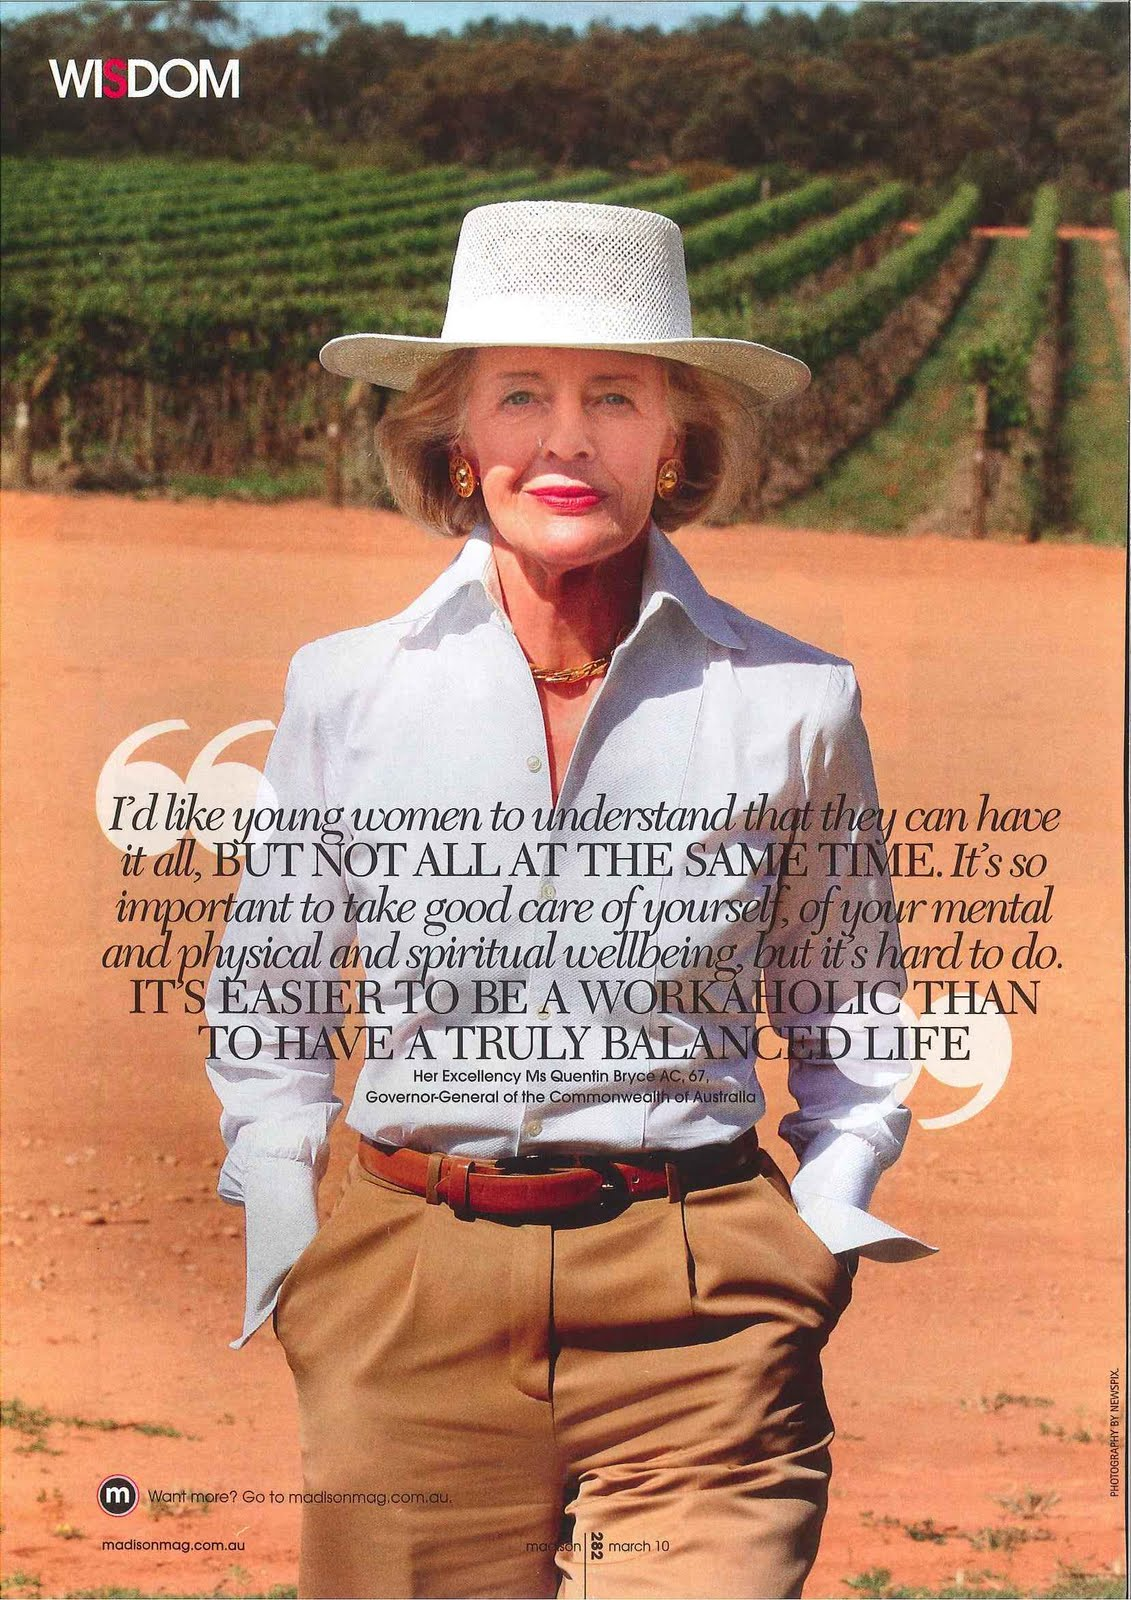 Quentin Bryce's quote